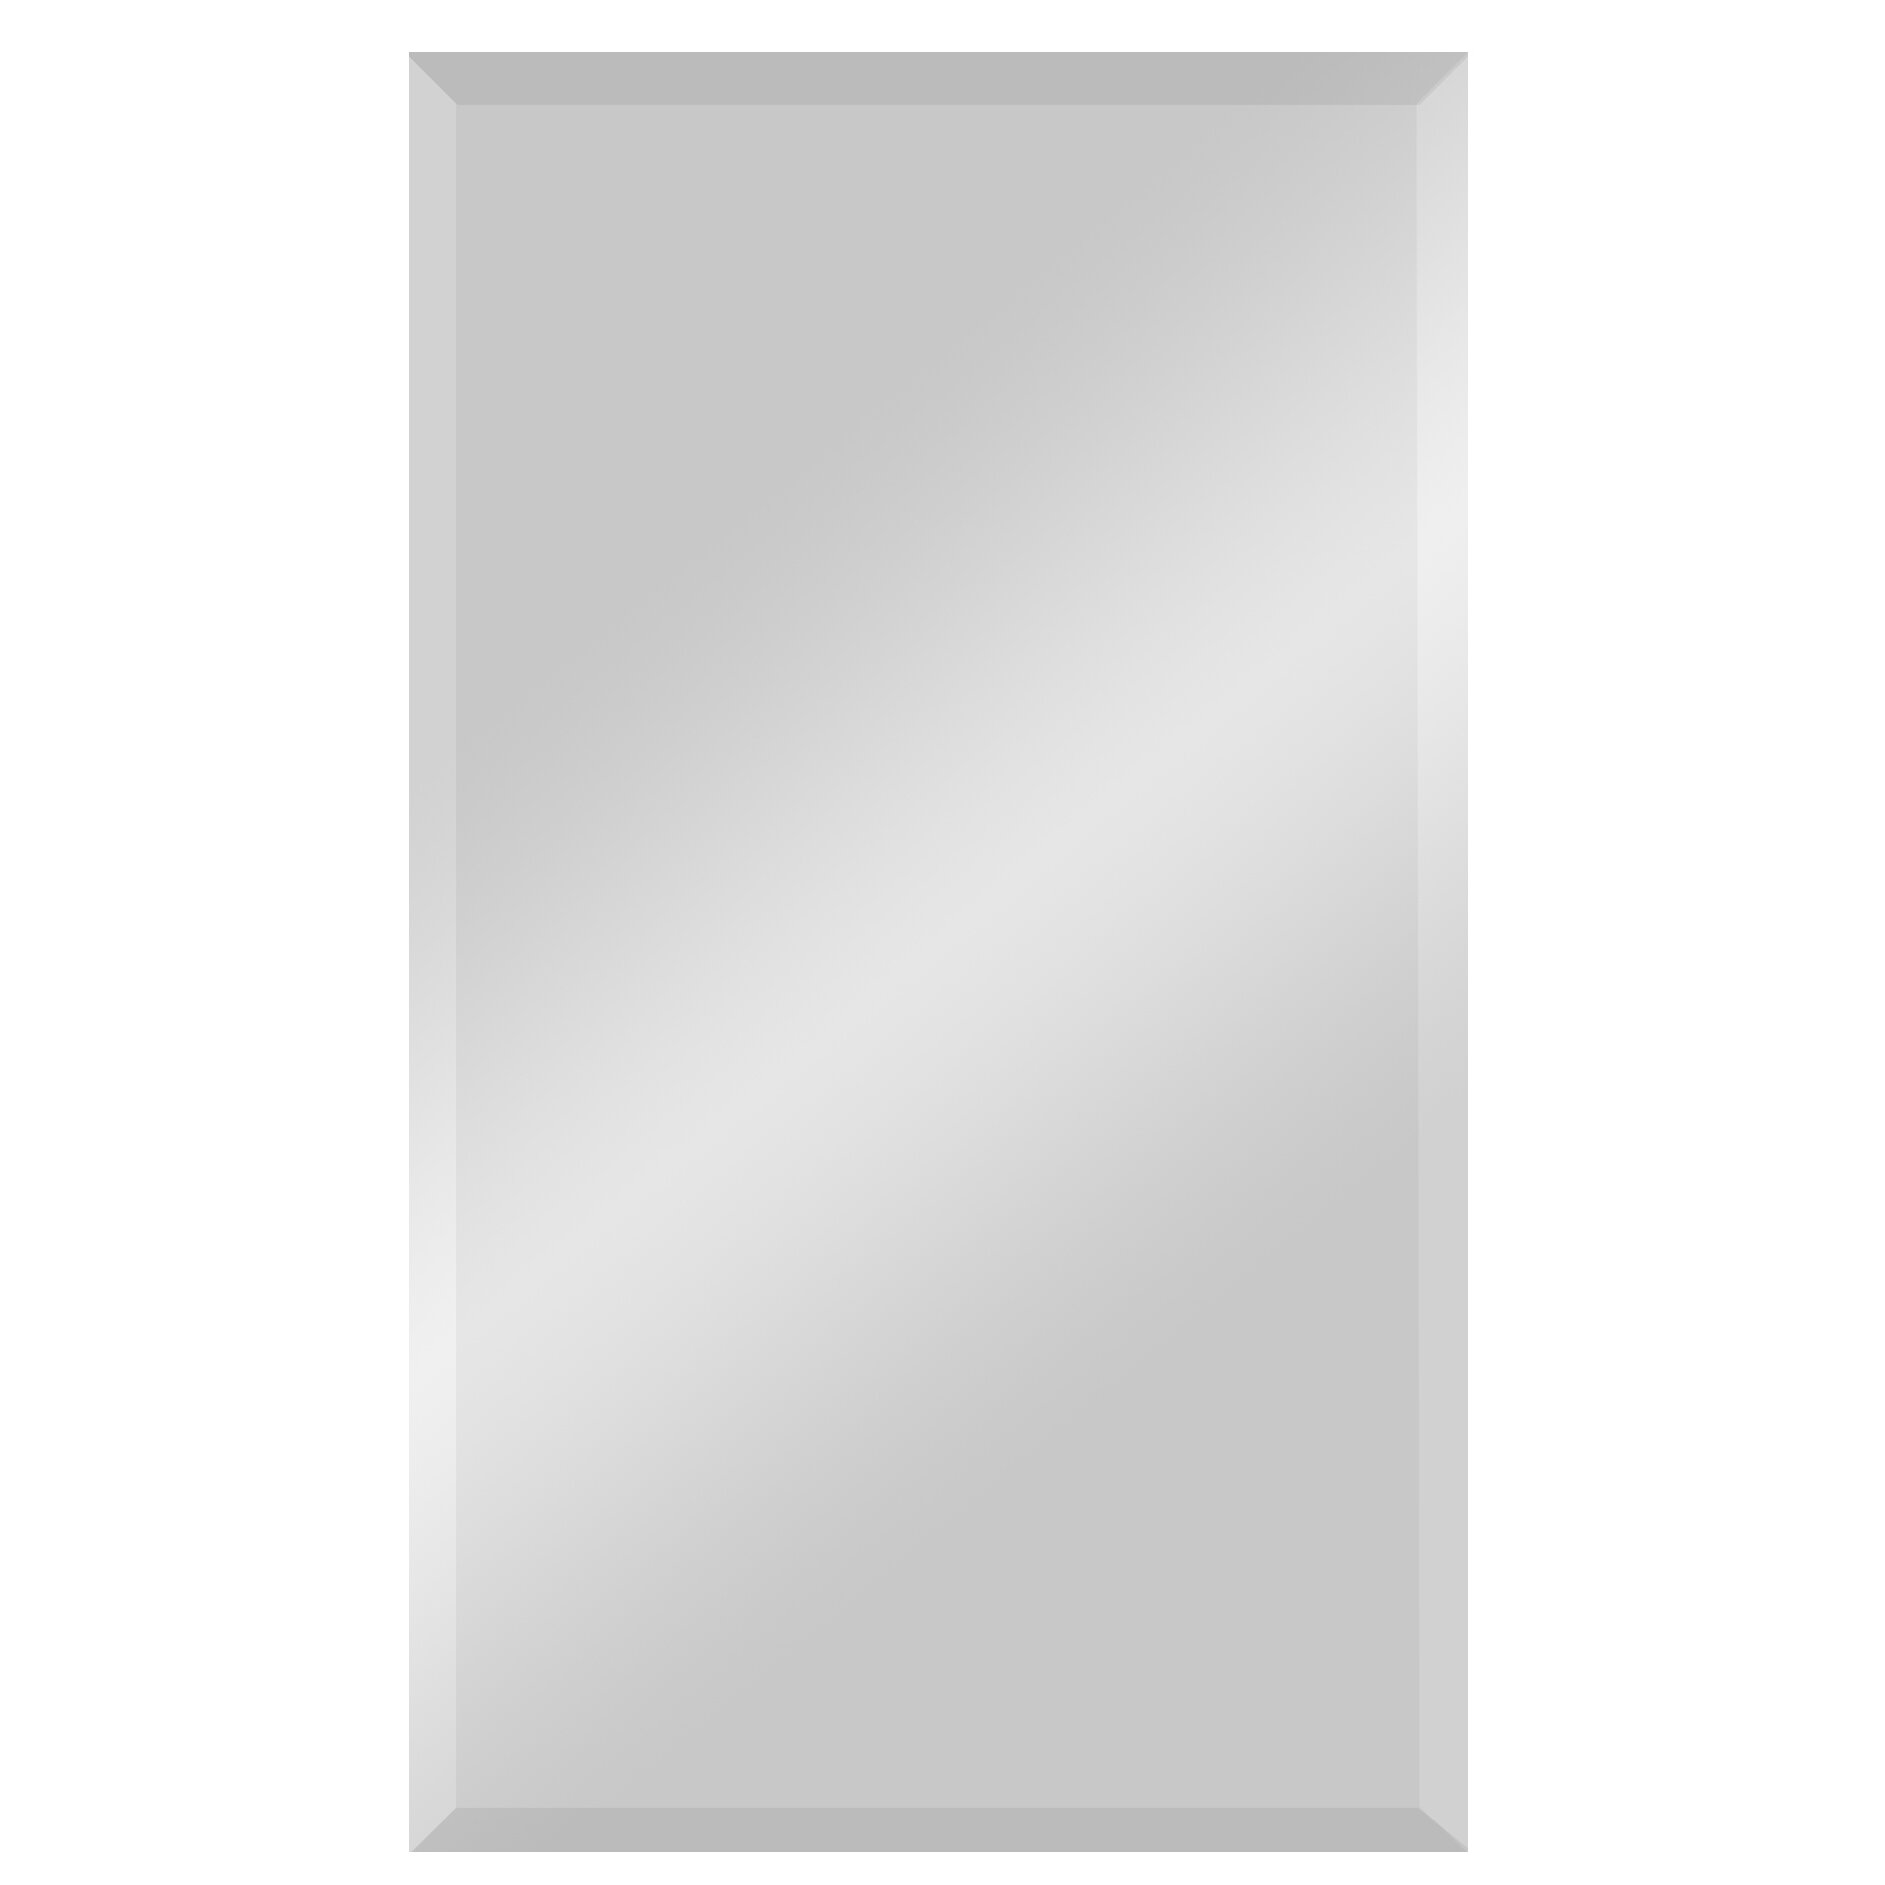 Ren Wil Frameless Beveled Rectangular Wall Mirror